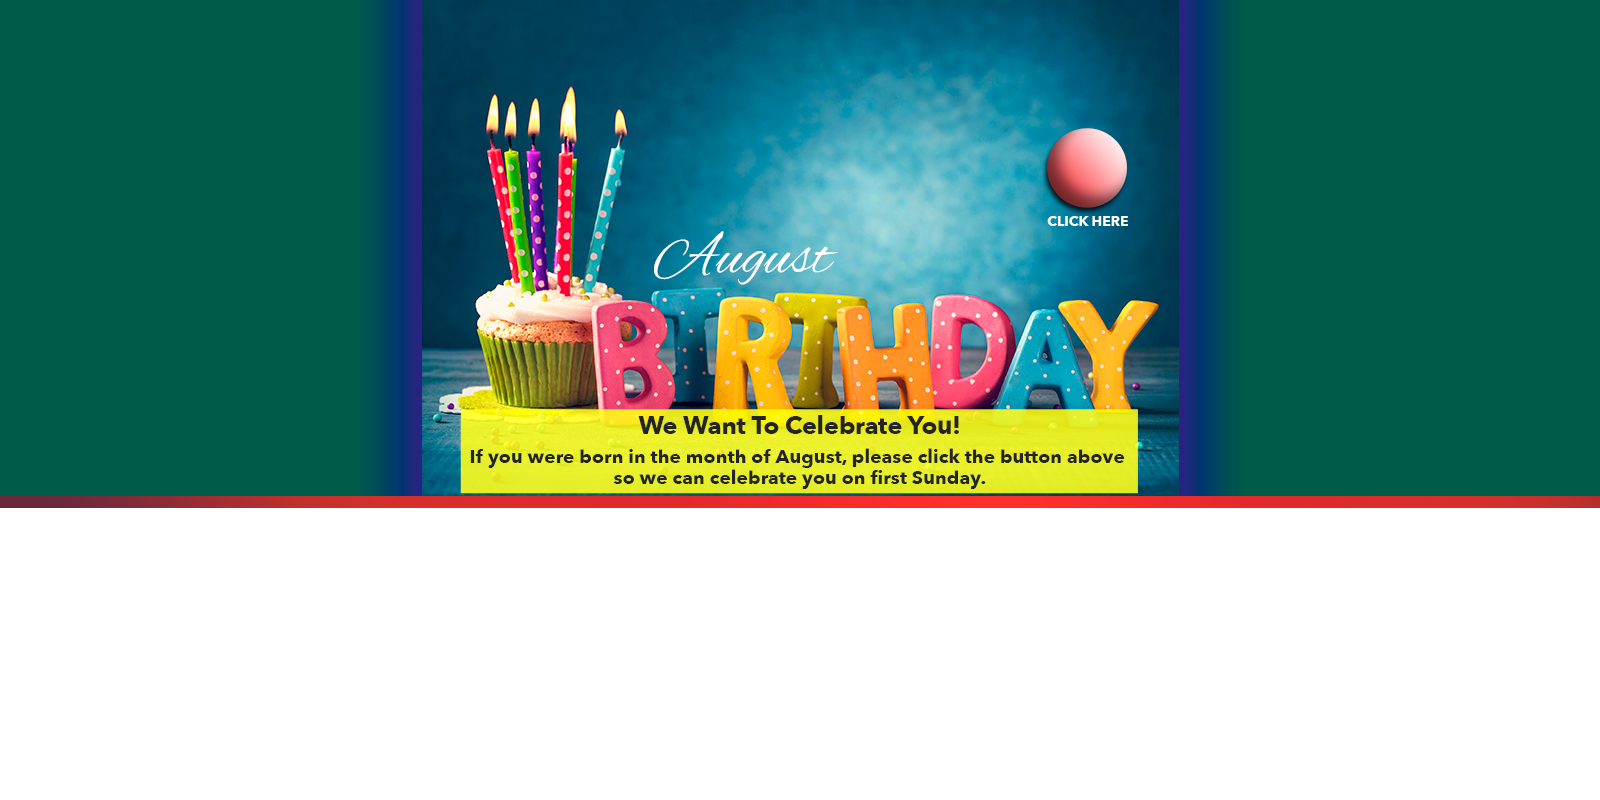 /images/pageimages/augustbirthdaygraphicweb1.jpg